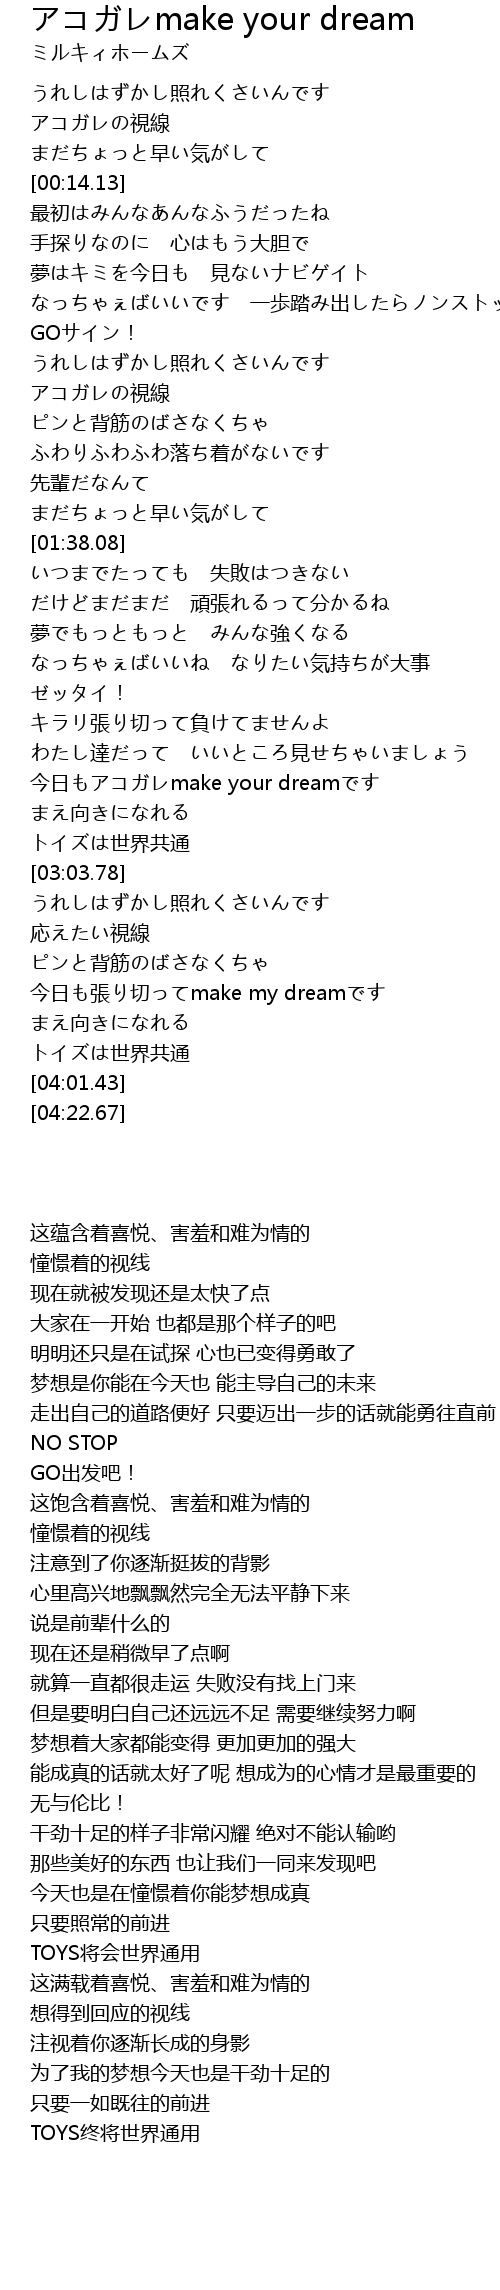 アコガレmake your dream make your dream Lyrics